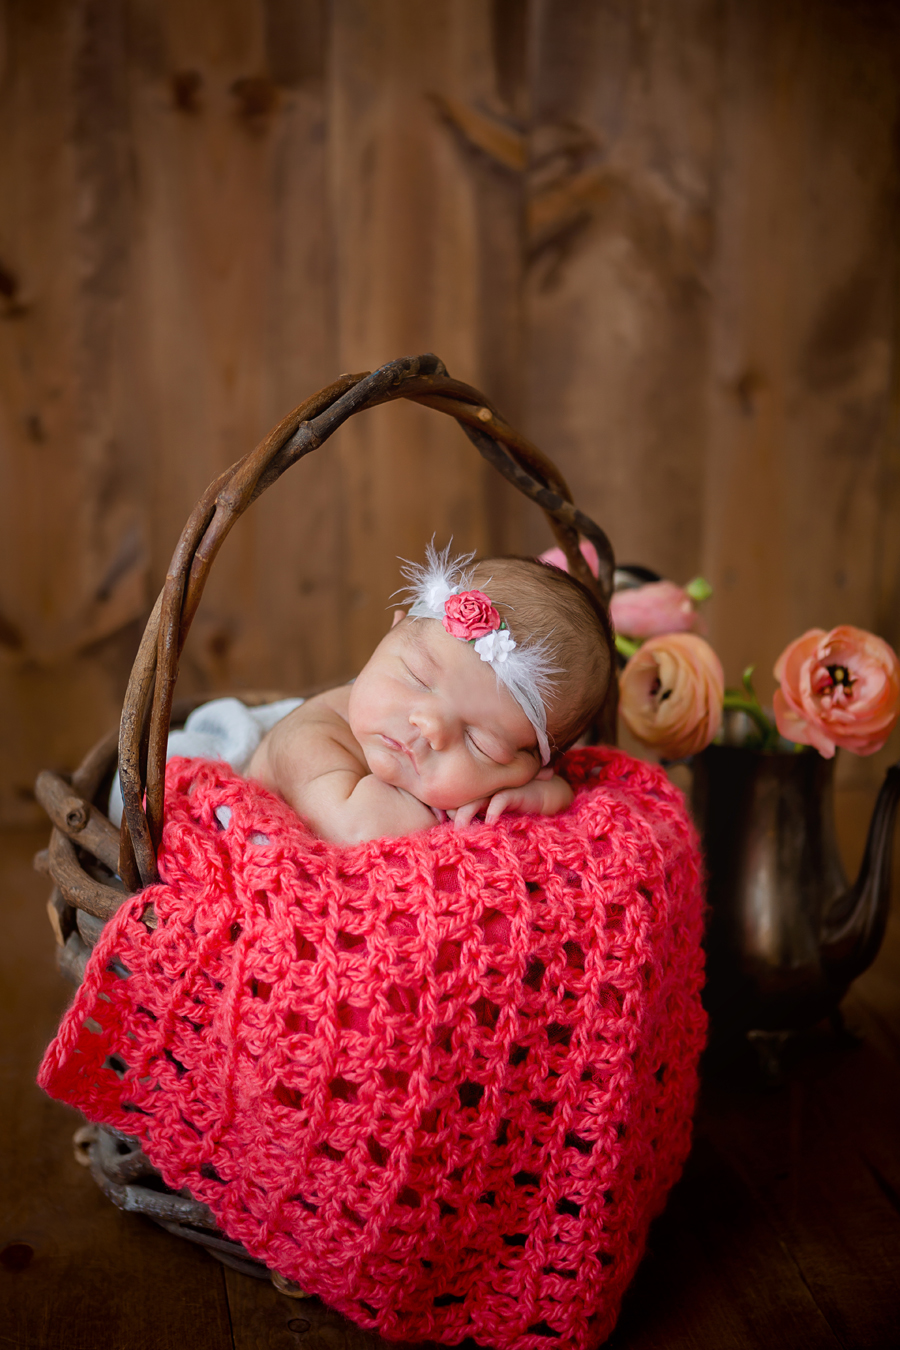 GrandRapidsnewbornphotographer21.jpg